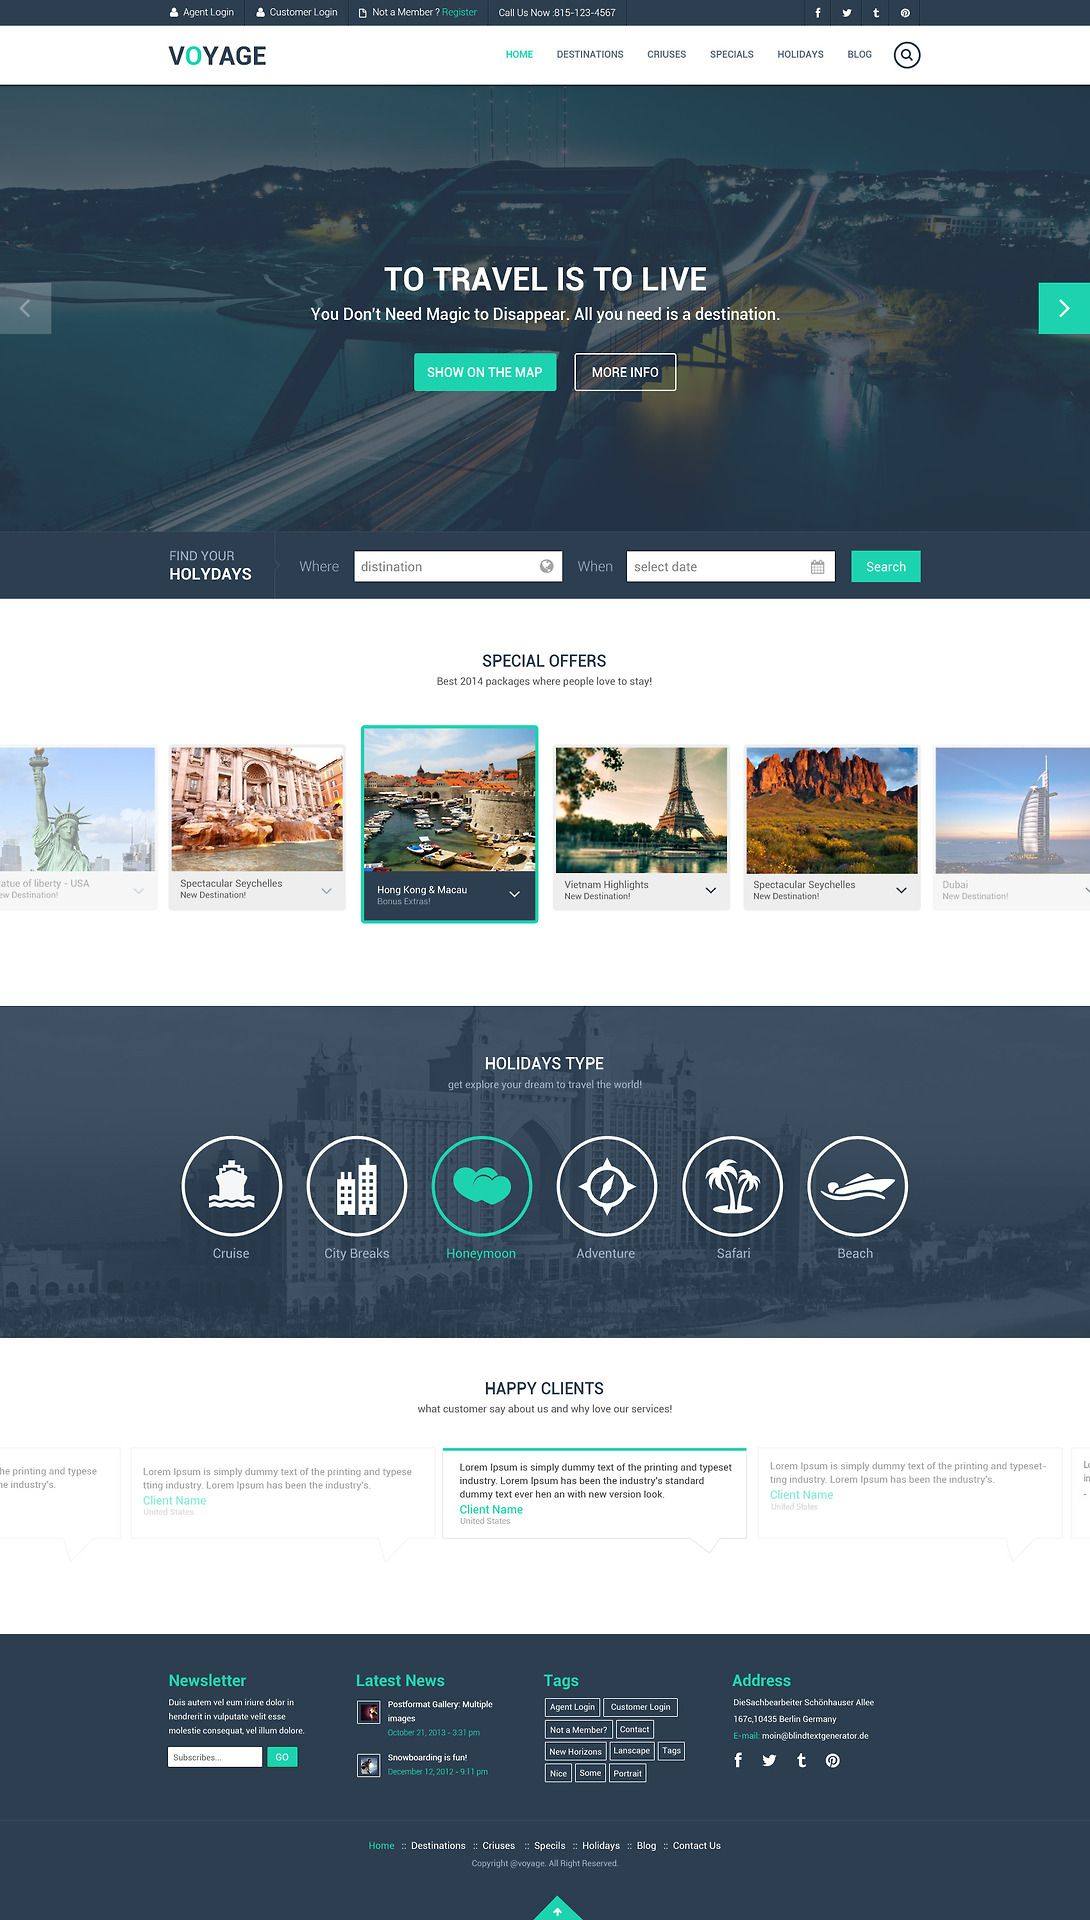 Free Travel Website Template PSD | Graphic Design | Pinterest ...